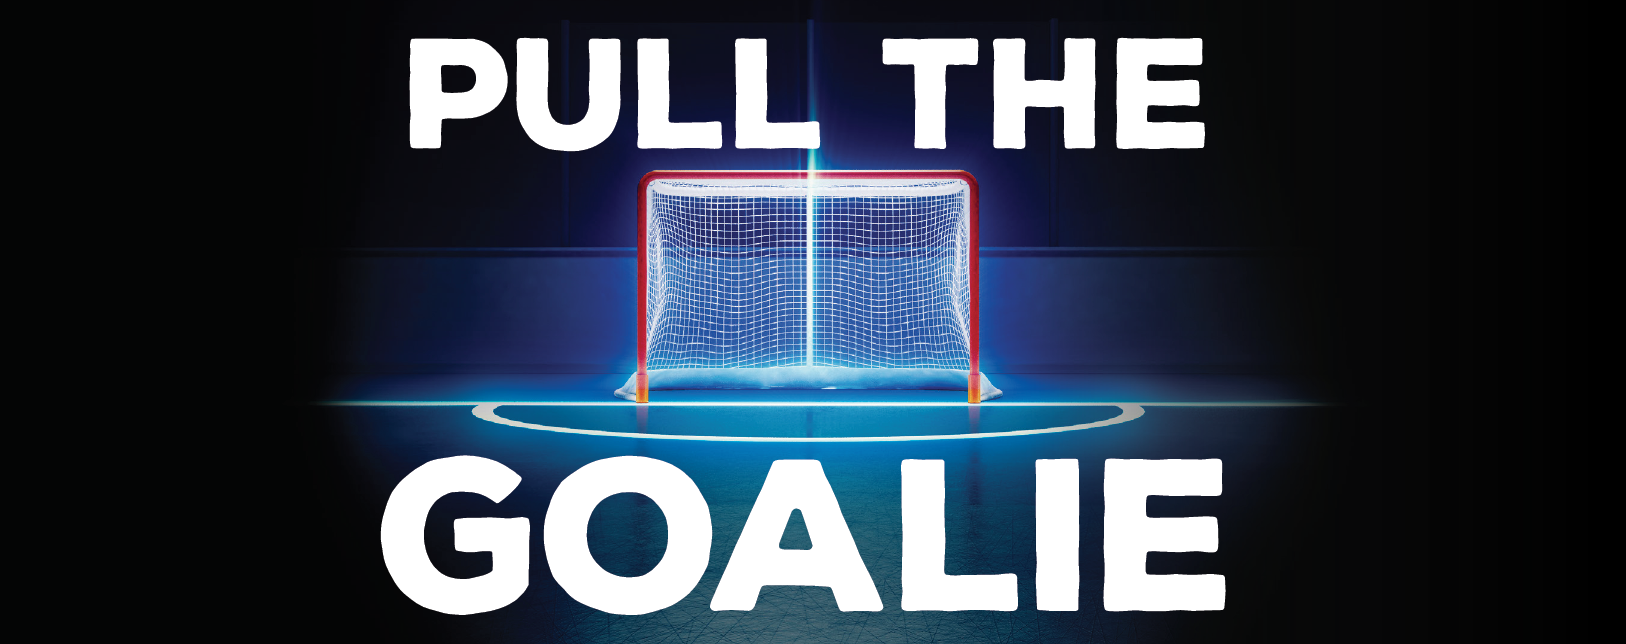 You are currently viewing Pull The Goalie